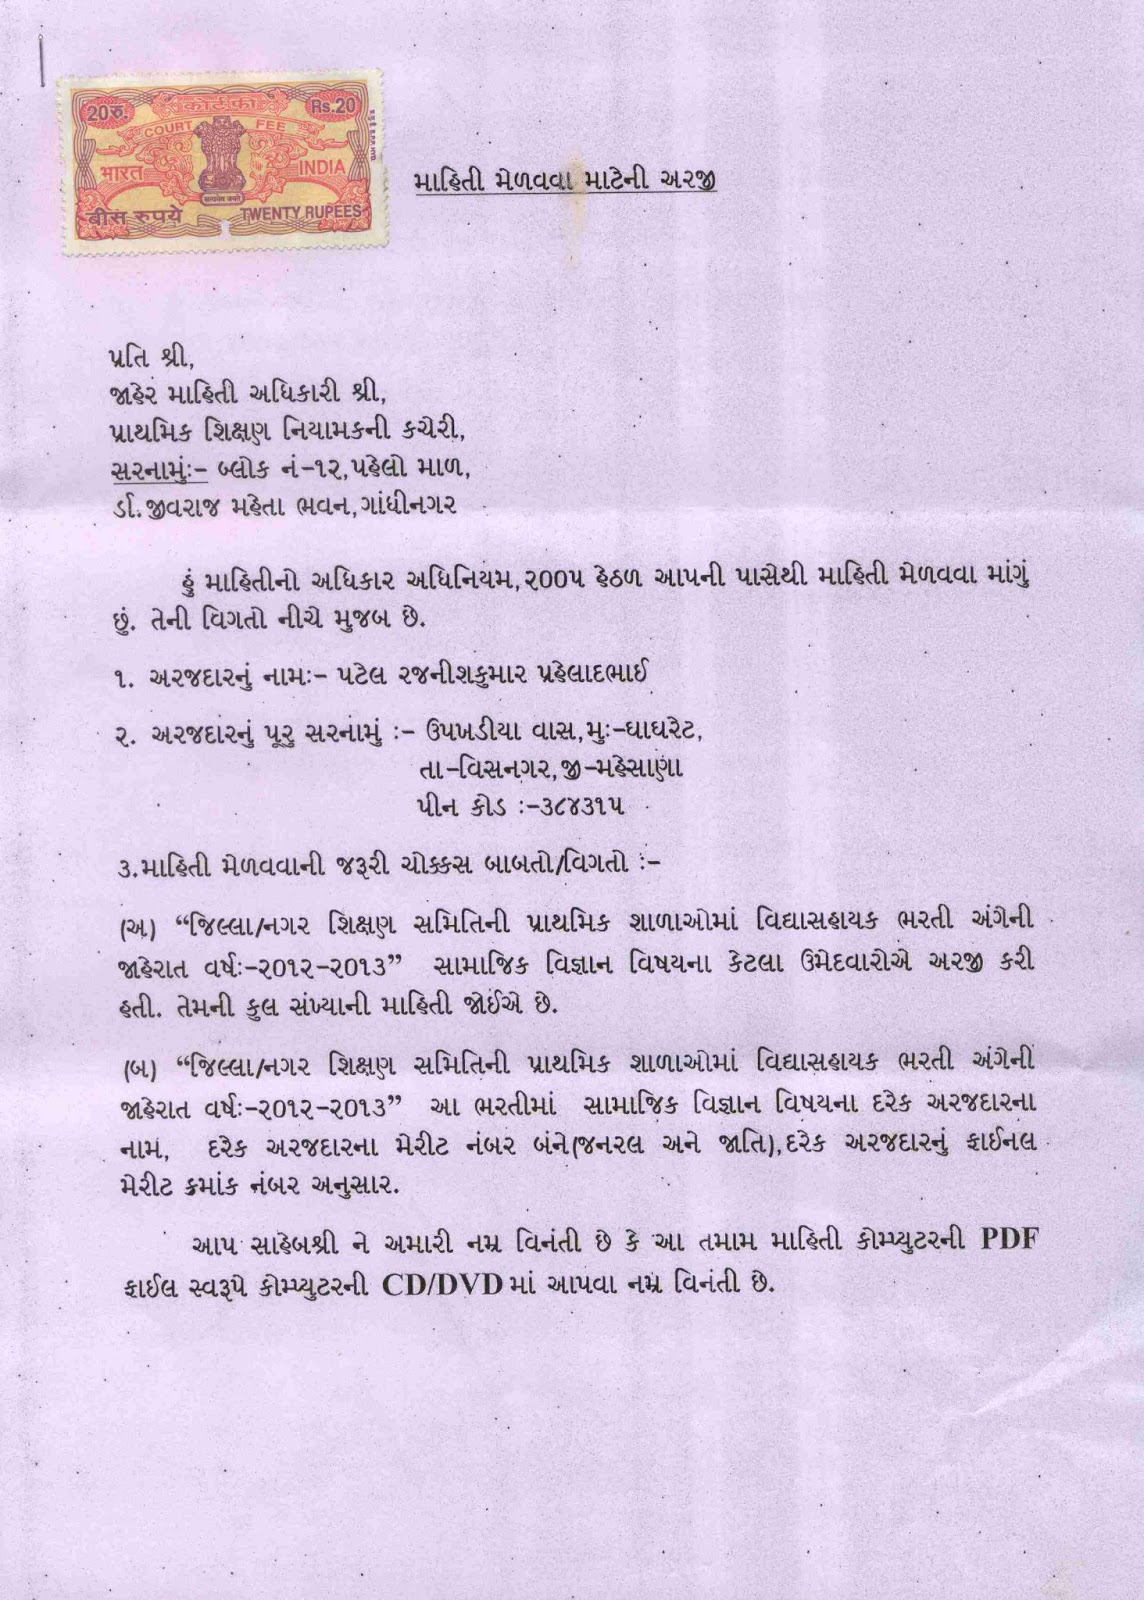 RTI-001 Job Application Form In Gujarati on job openings, contact form, job payment receipt, job applications you can print, agreement form, job opportunity, job search, job vacancy, employee benefits form, job resume, job requirements, job advertisement, job letter, job applications online, cover letter form, cv form,